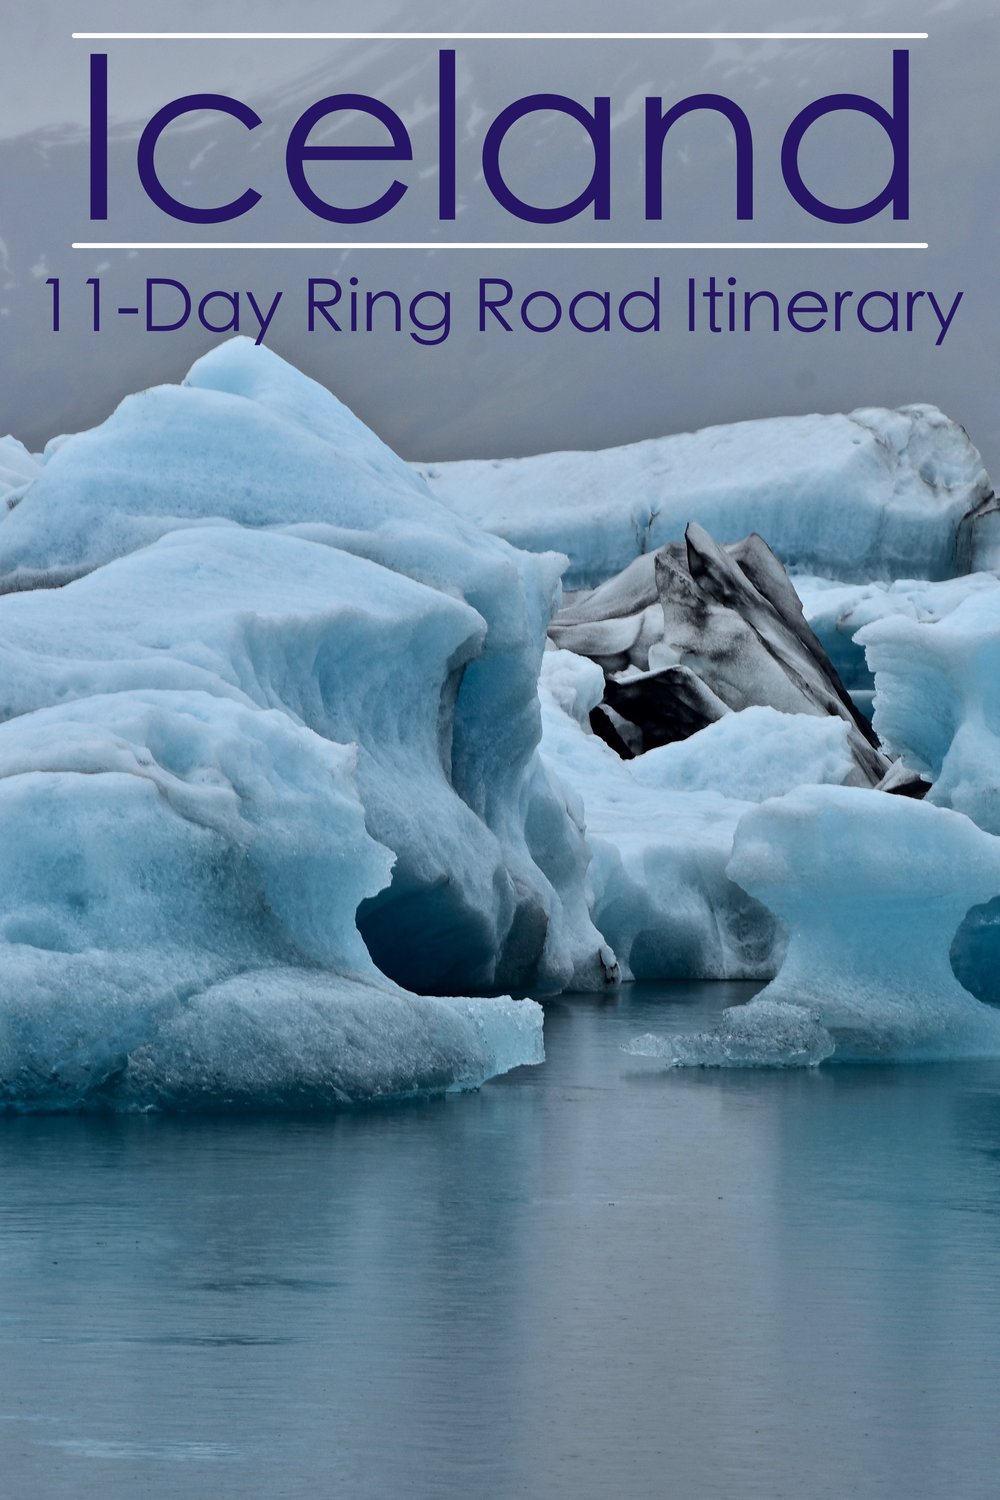 11-Days in Iceland | Complete Itinerary for the Ring Road.  We drove around the entire country of Iceland on the Ring Road. #Iceland #ringroad #itinerary #europe